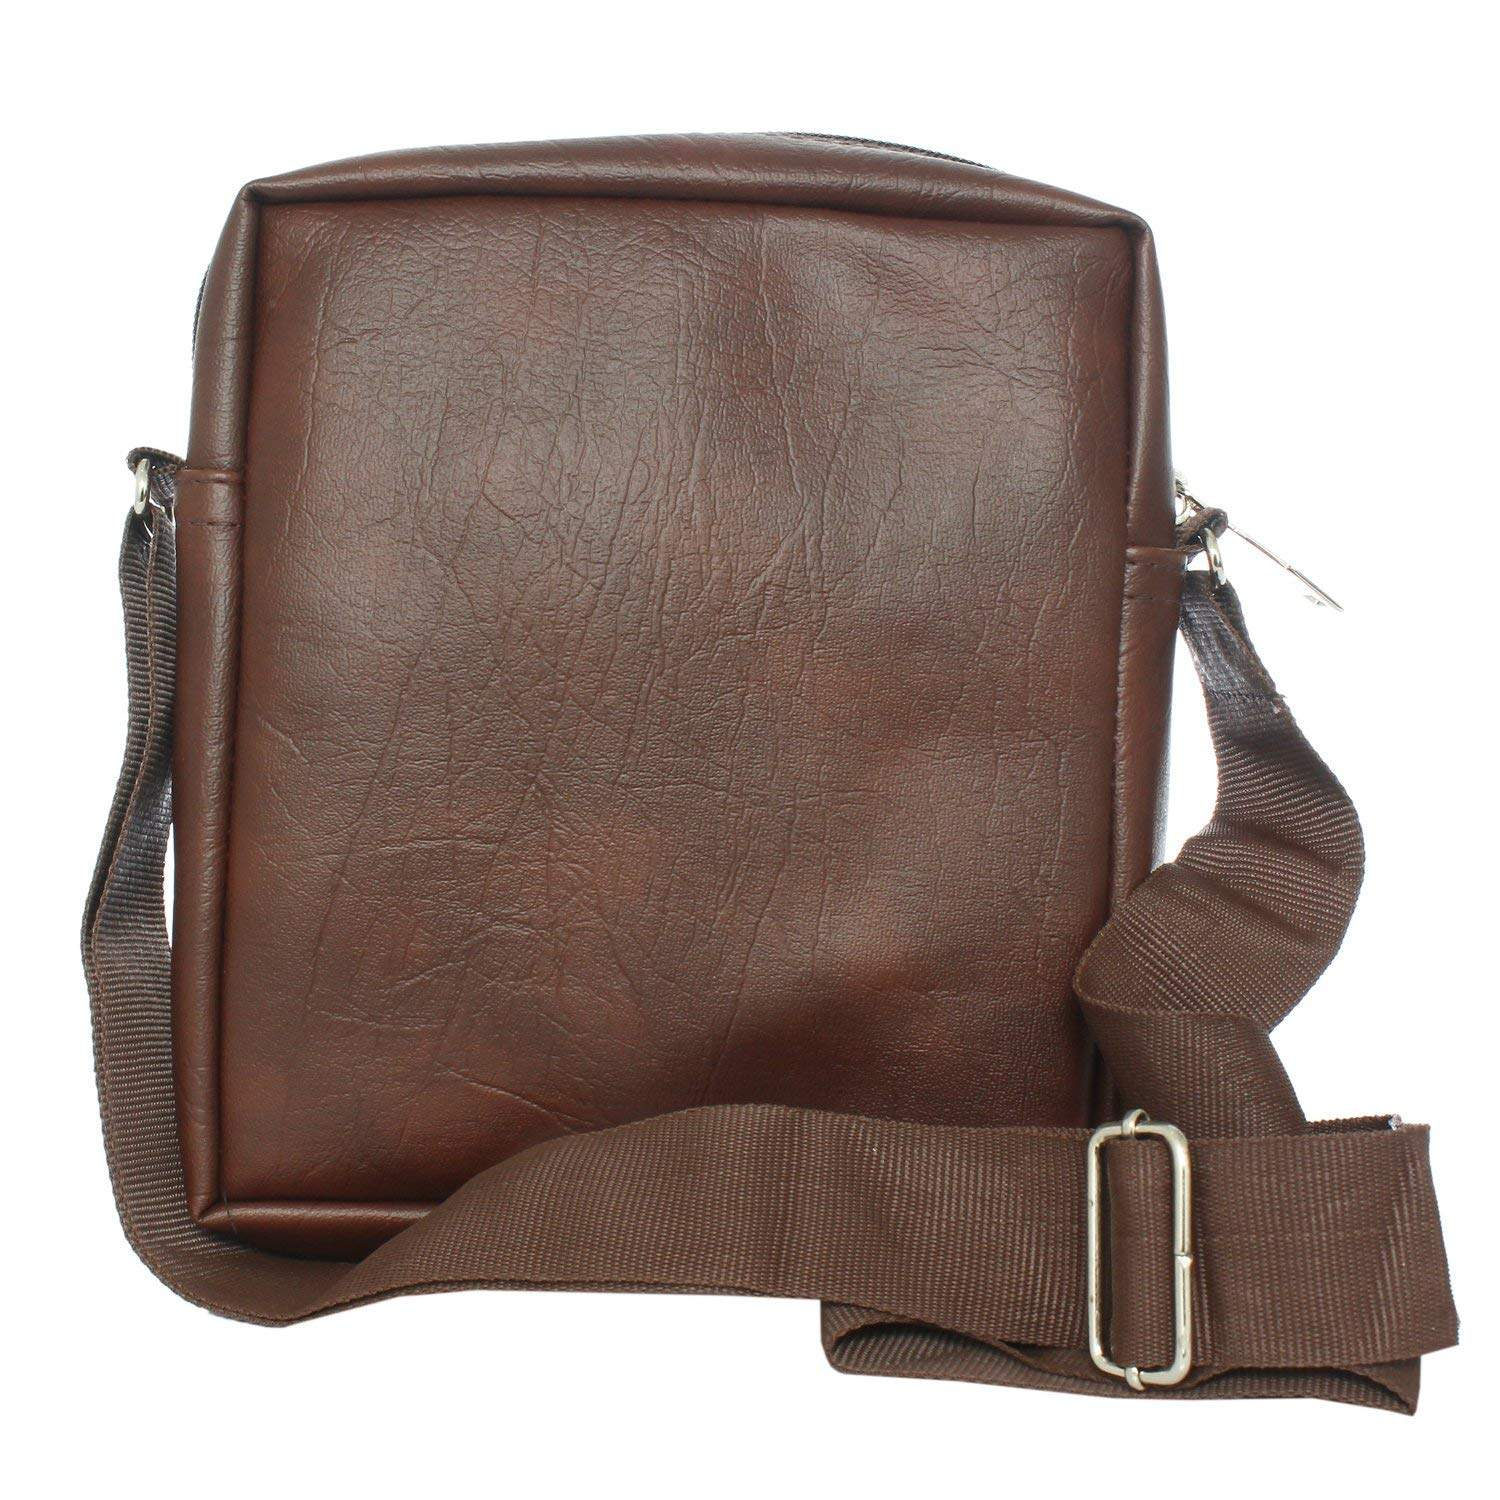 PU Leather Sling Bag Side Bag (Brown) - Bagaholics Gift